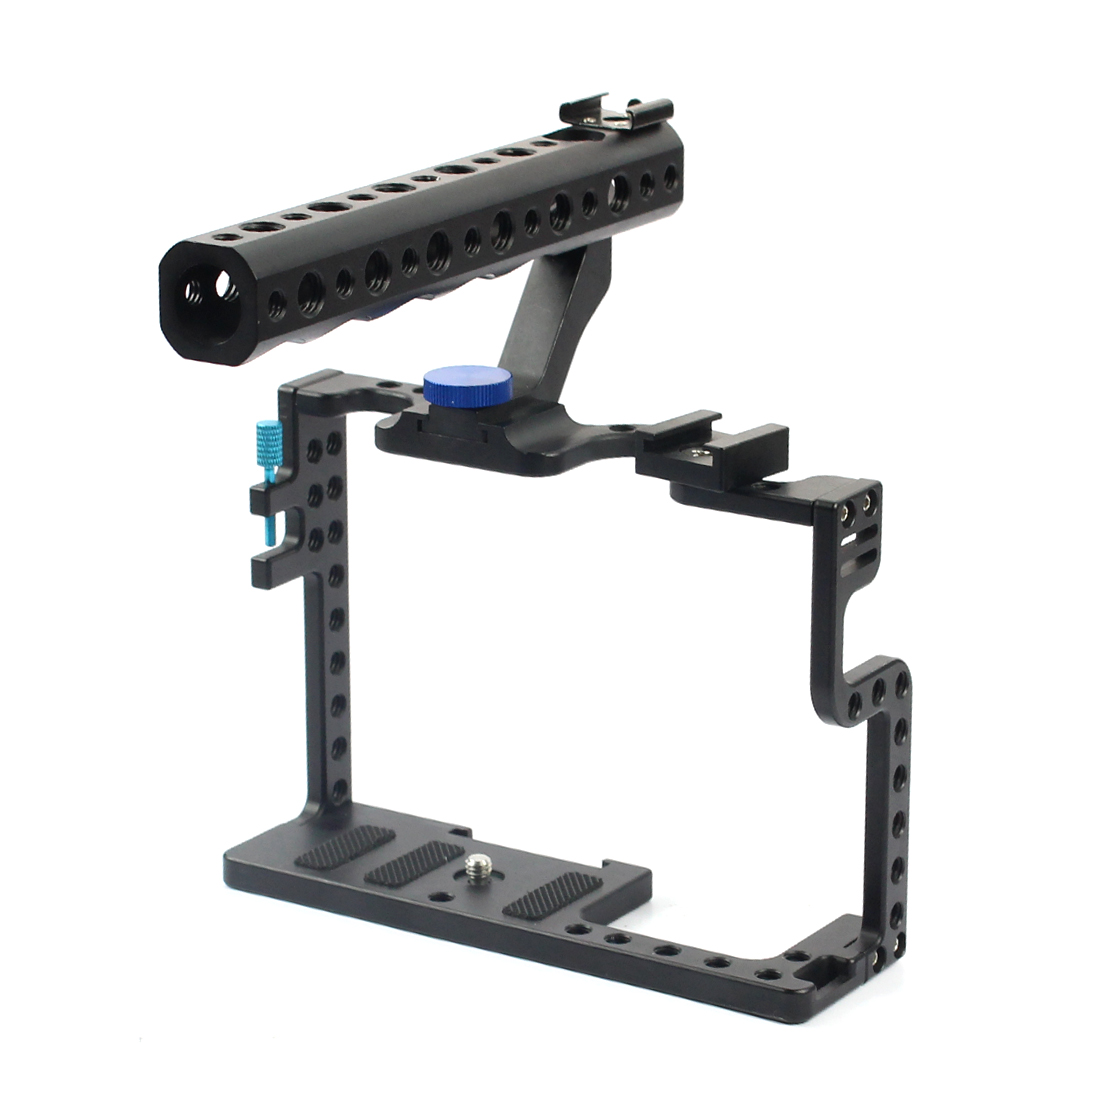 Camera Cage Video Stabilizer With Top Handle For Panasonic Lumix GH5 Camera Photo Studio Kit